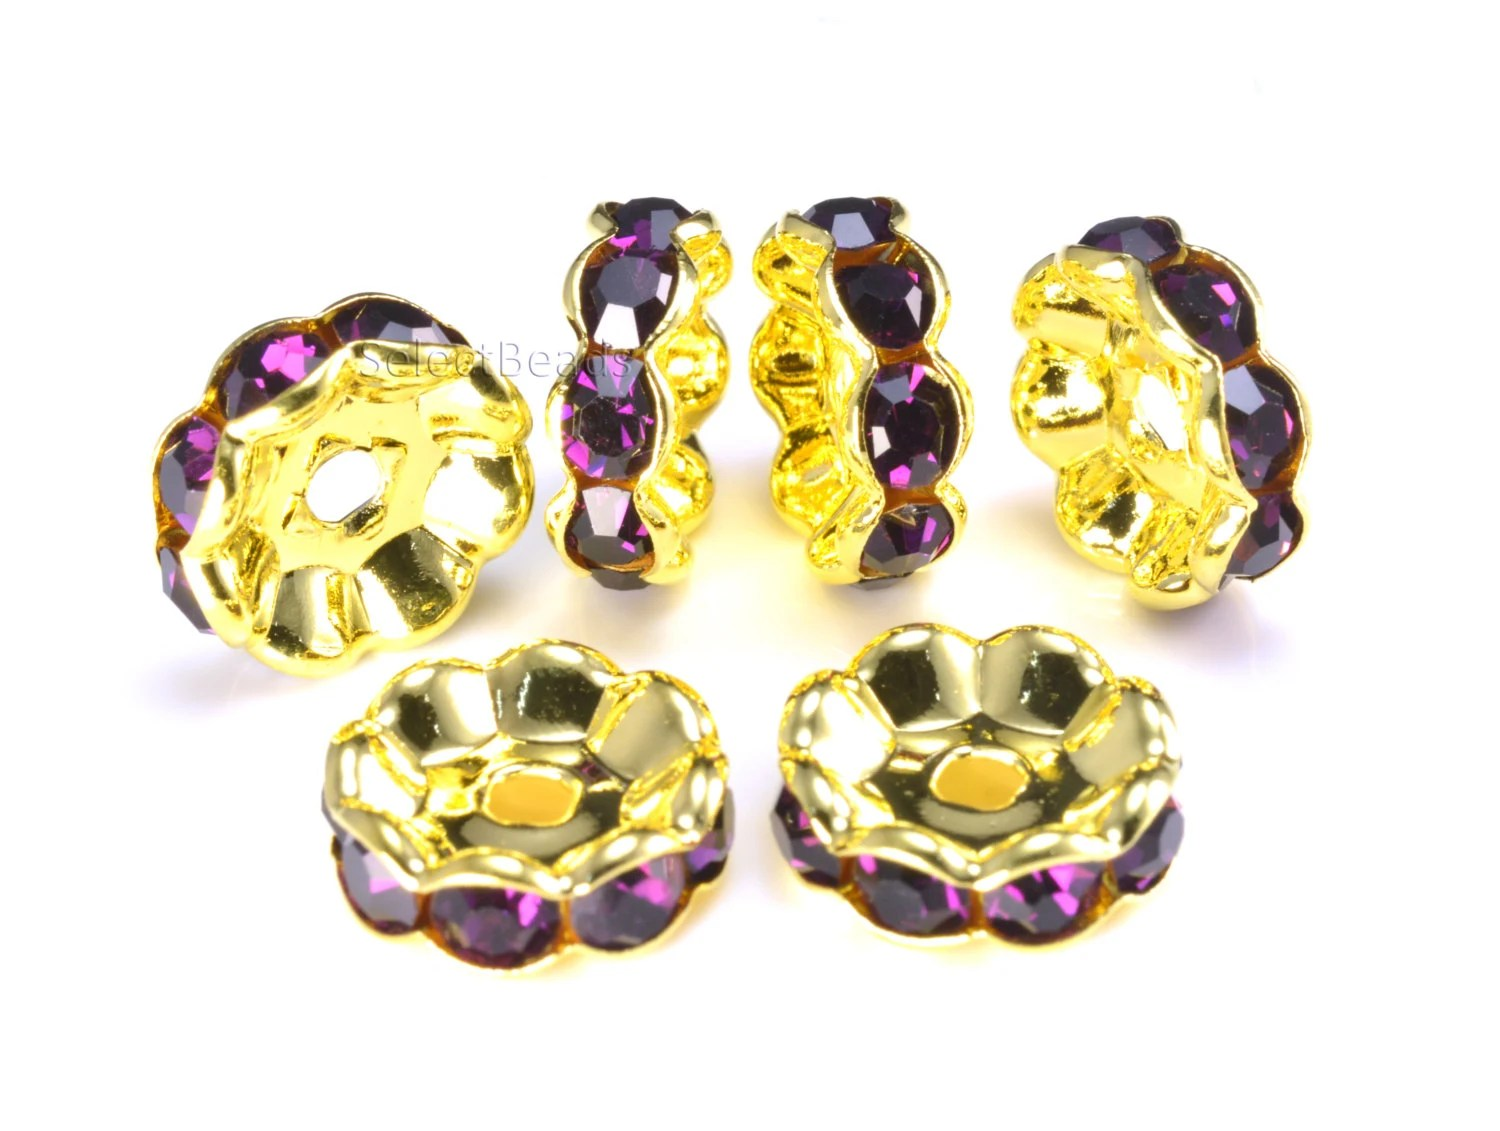 Rhinestone copper spacer bead yellow gold plated purple for Craft and jewelry supplies